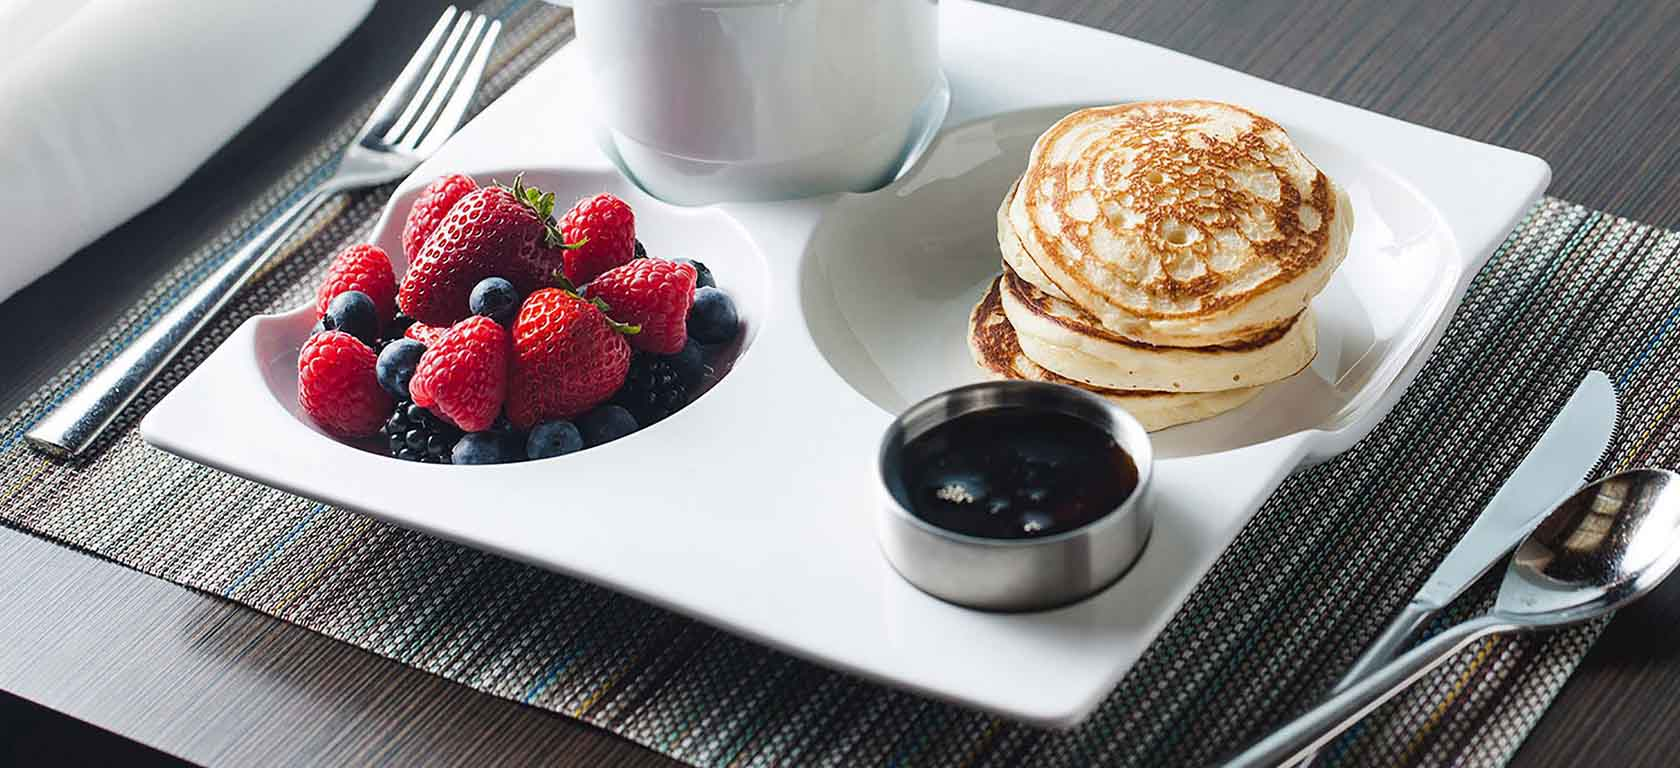 Intricate undulated white ceramic dish holding a pancakes and fruit breakfast.